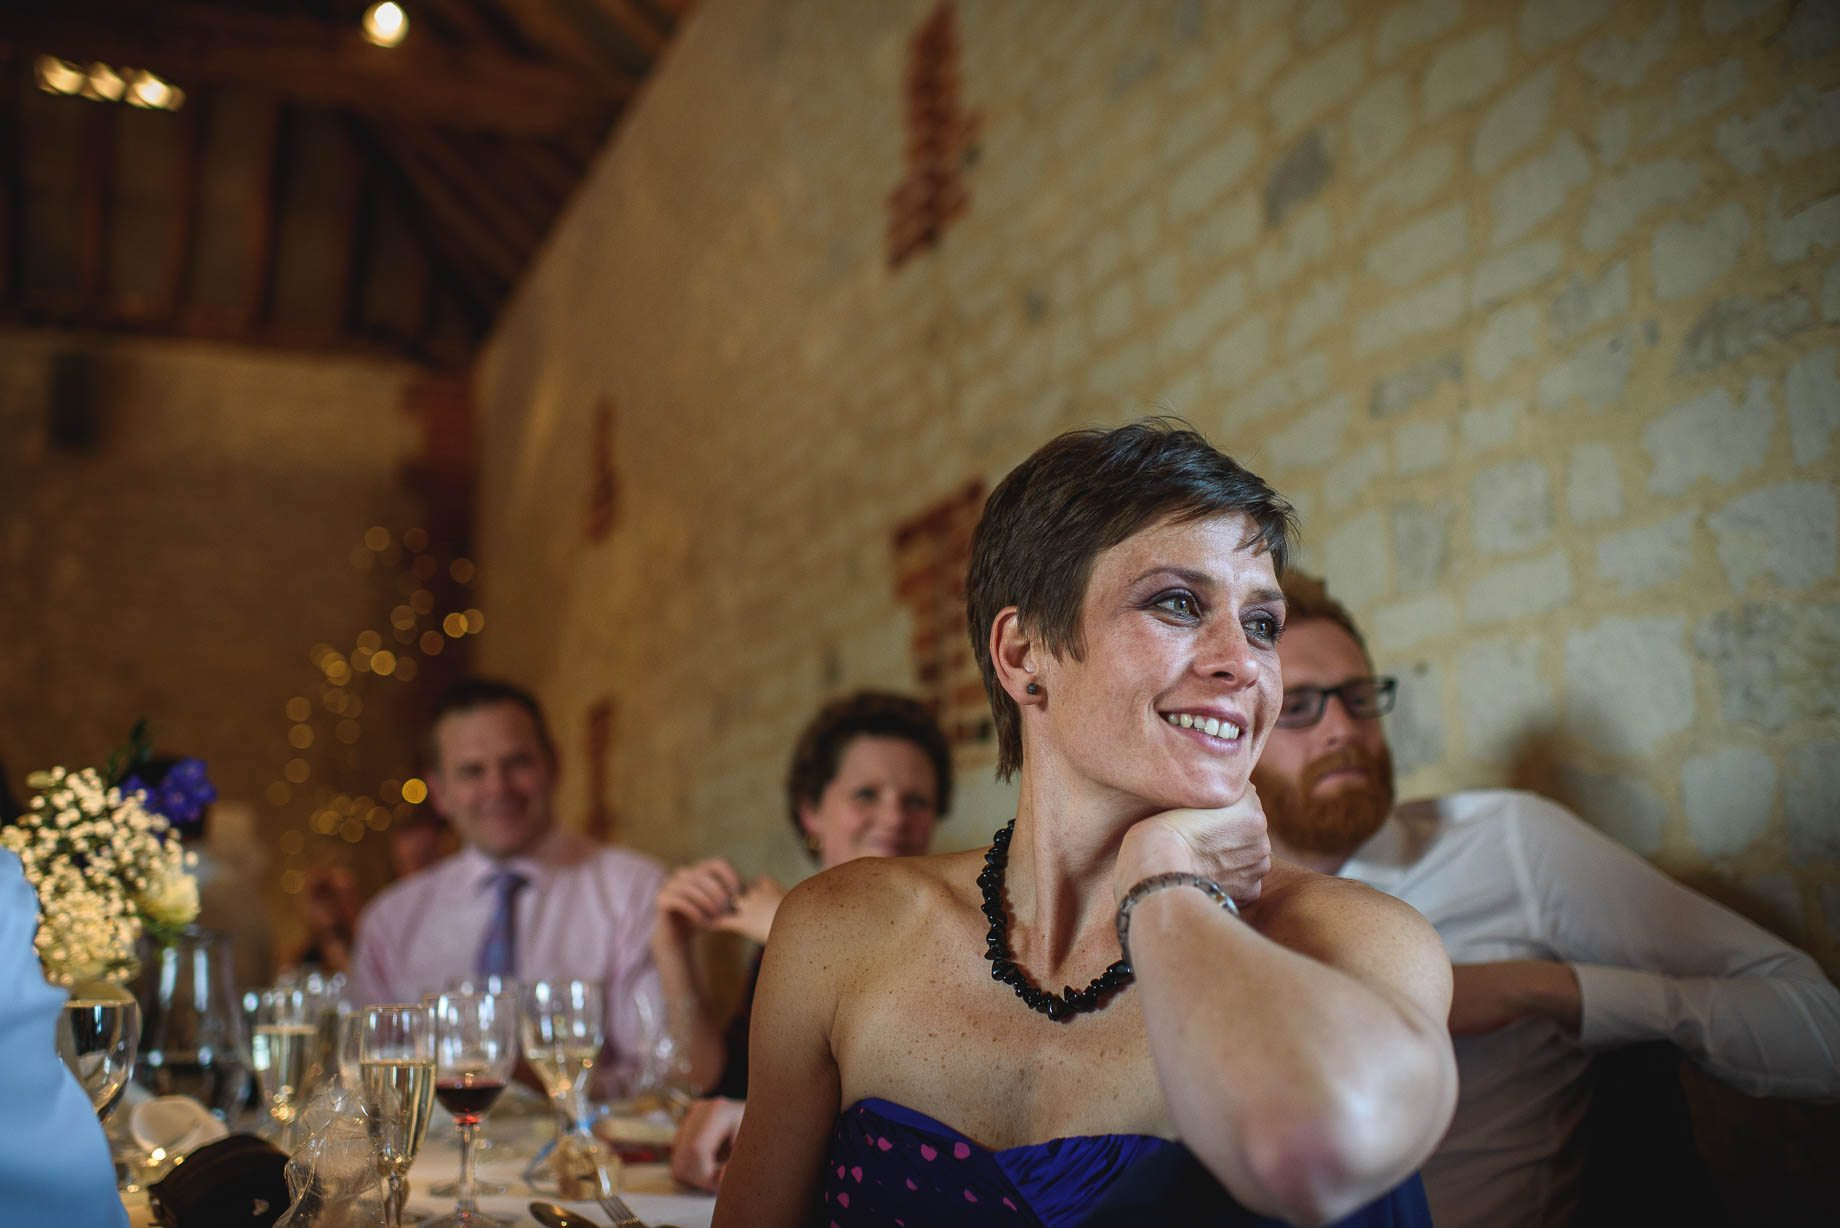 Bury Court Barn wedding photography by Guy Collier - Heather and Pat (130 of 170)